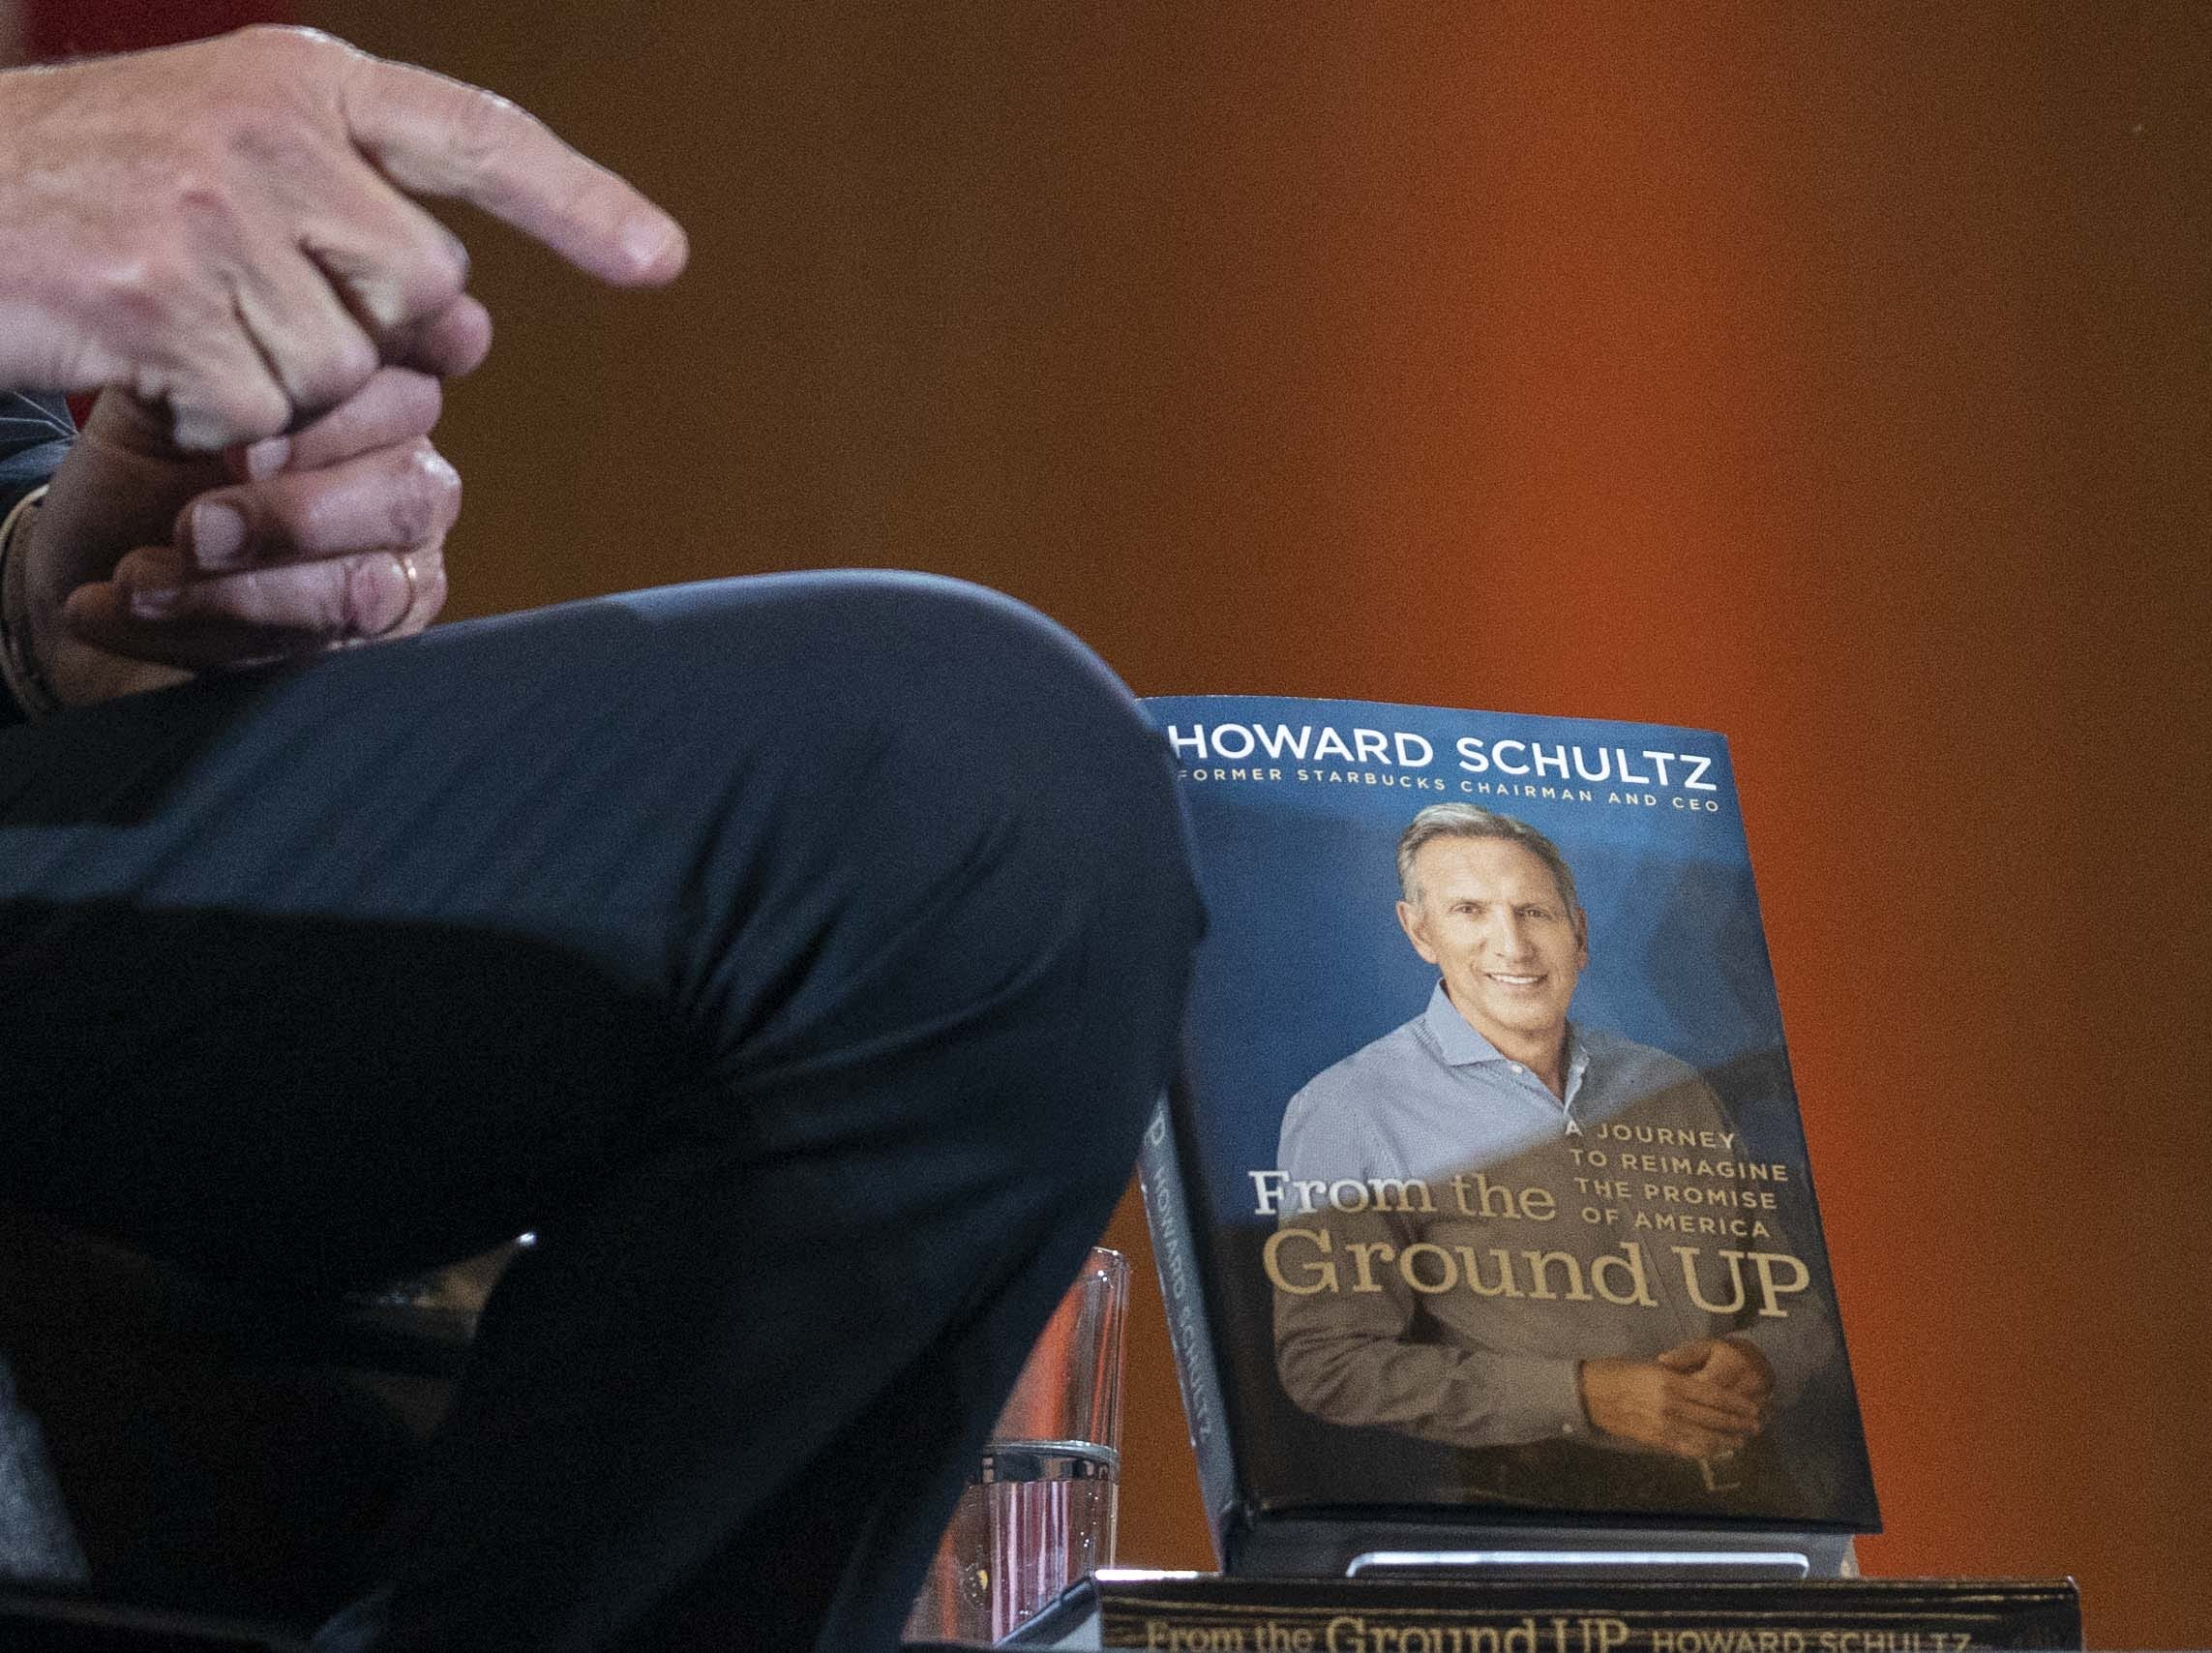 Former Starbucks CEO Howard Schultz's book rests on a table at a town hall at ASU on Jan. 30, 2019.